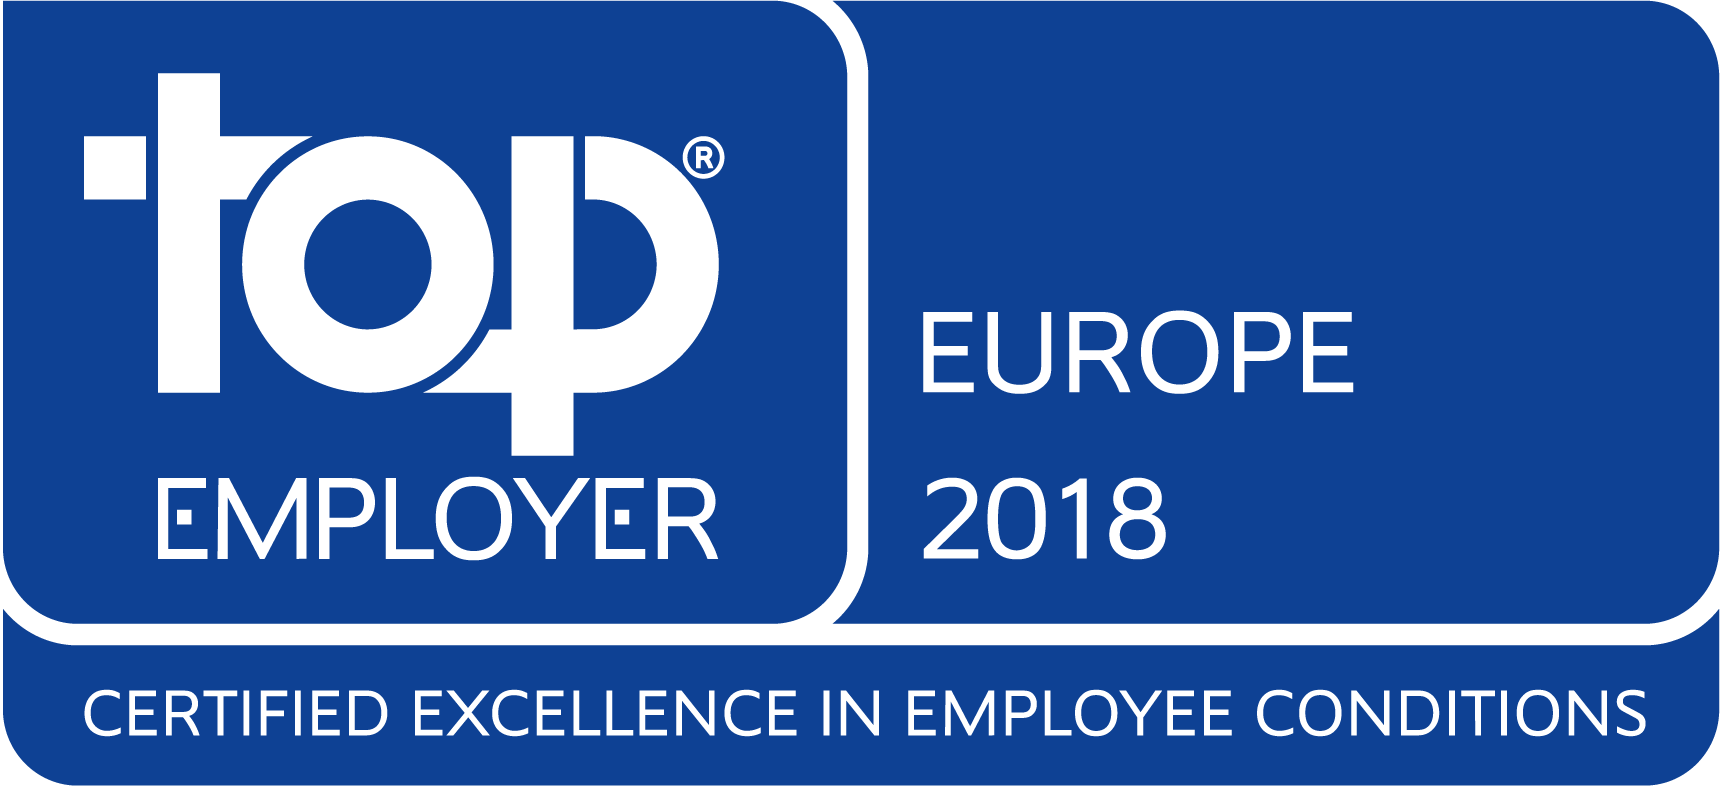 Accenture Top Employer Europe 2018